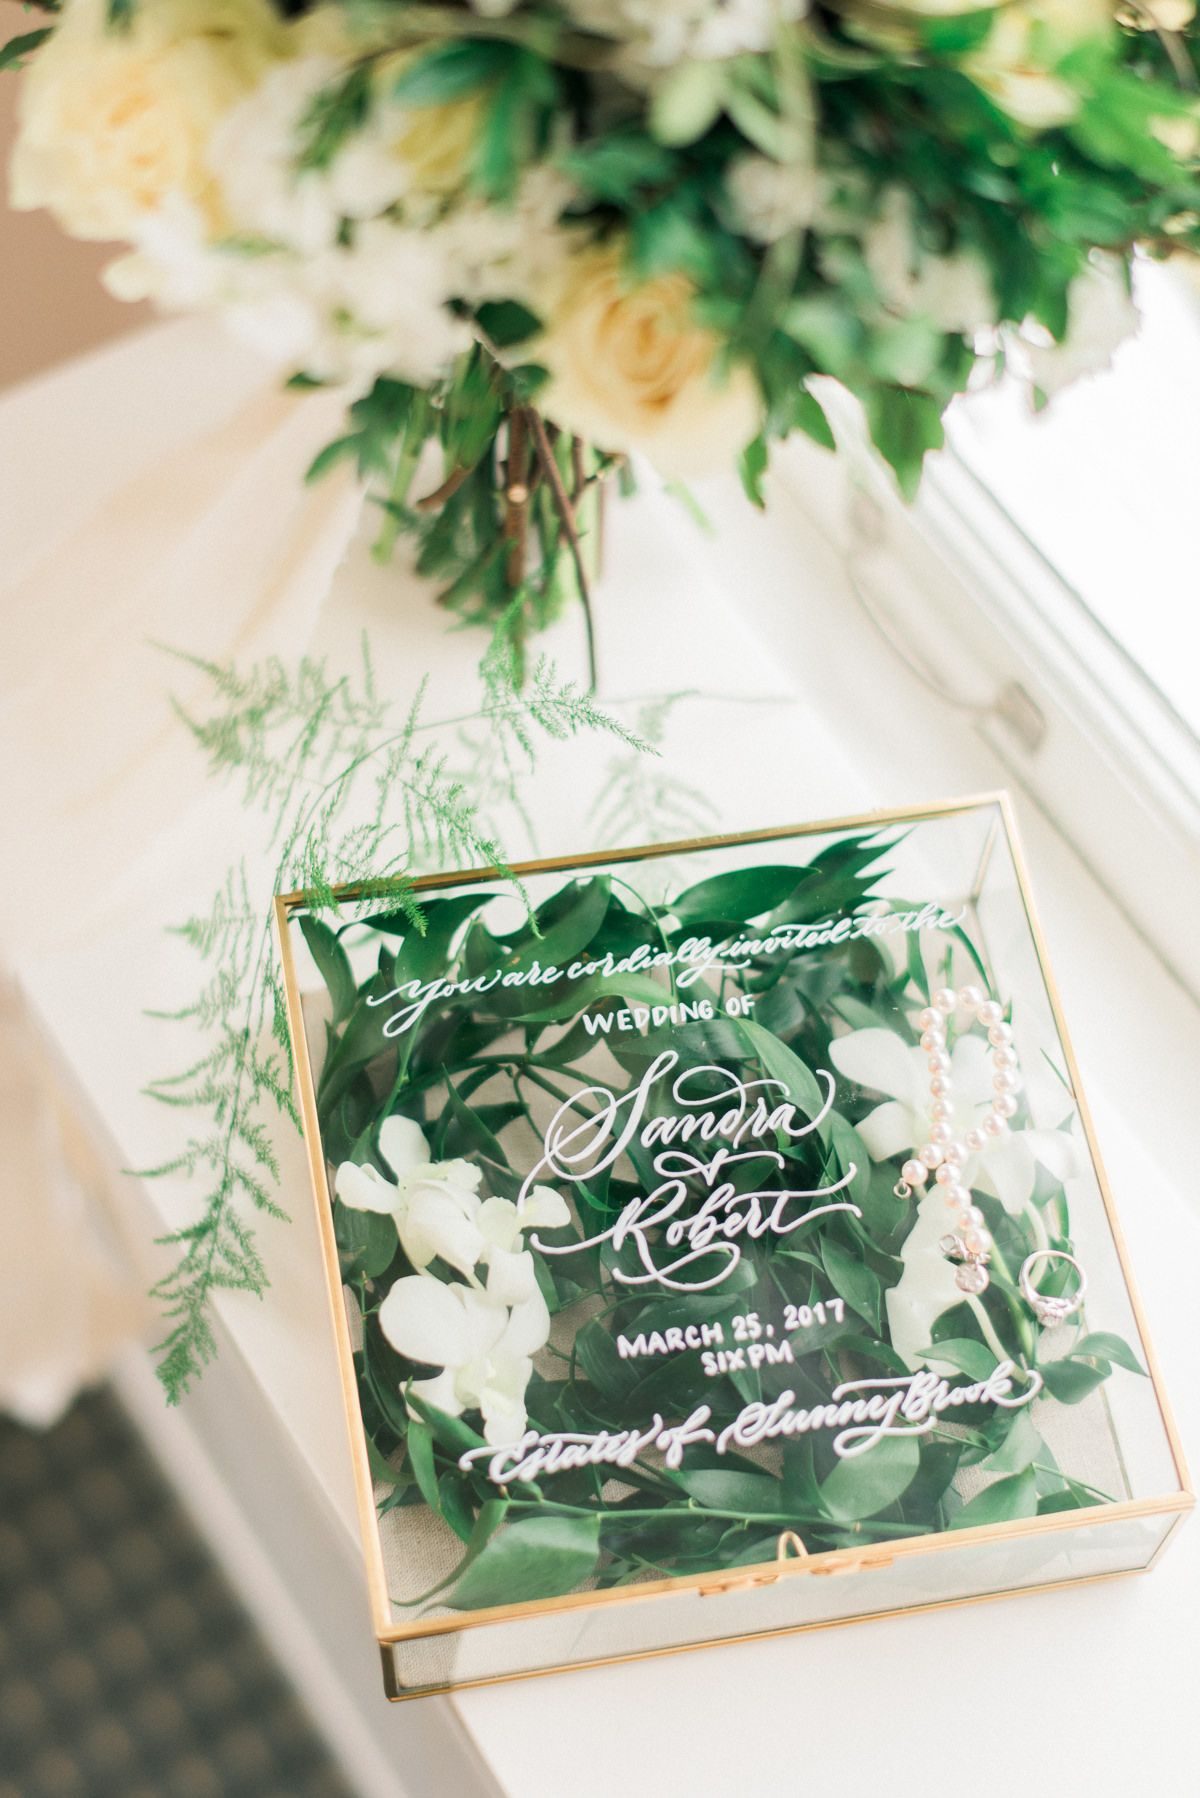 This non traditional wedding invitation handwritten on a gold brass glass box that not only serves as a wedding invitation but also a pre wedding keepsake